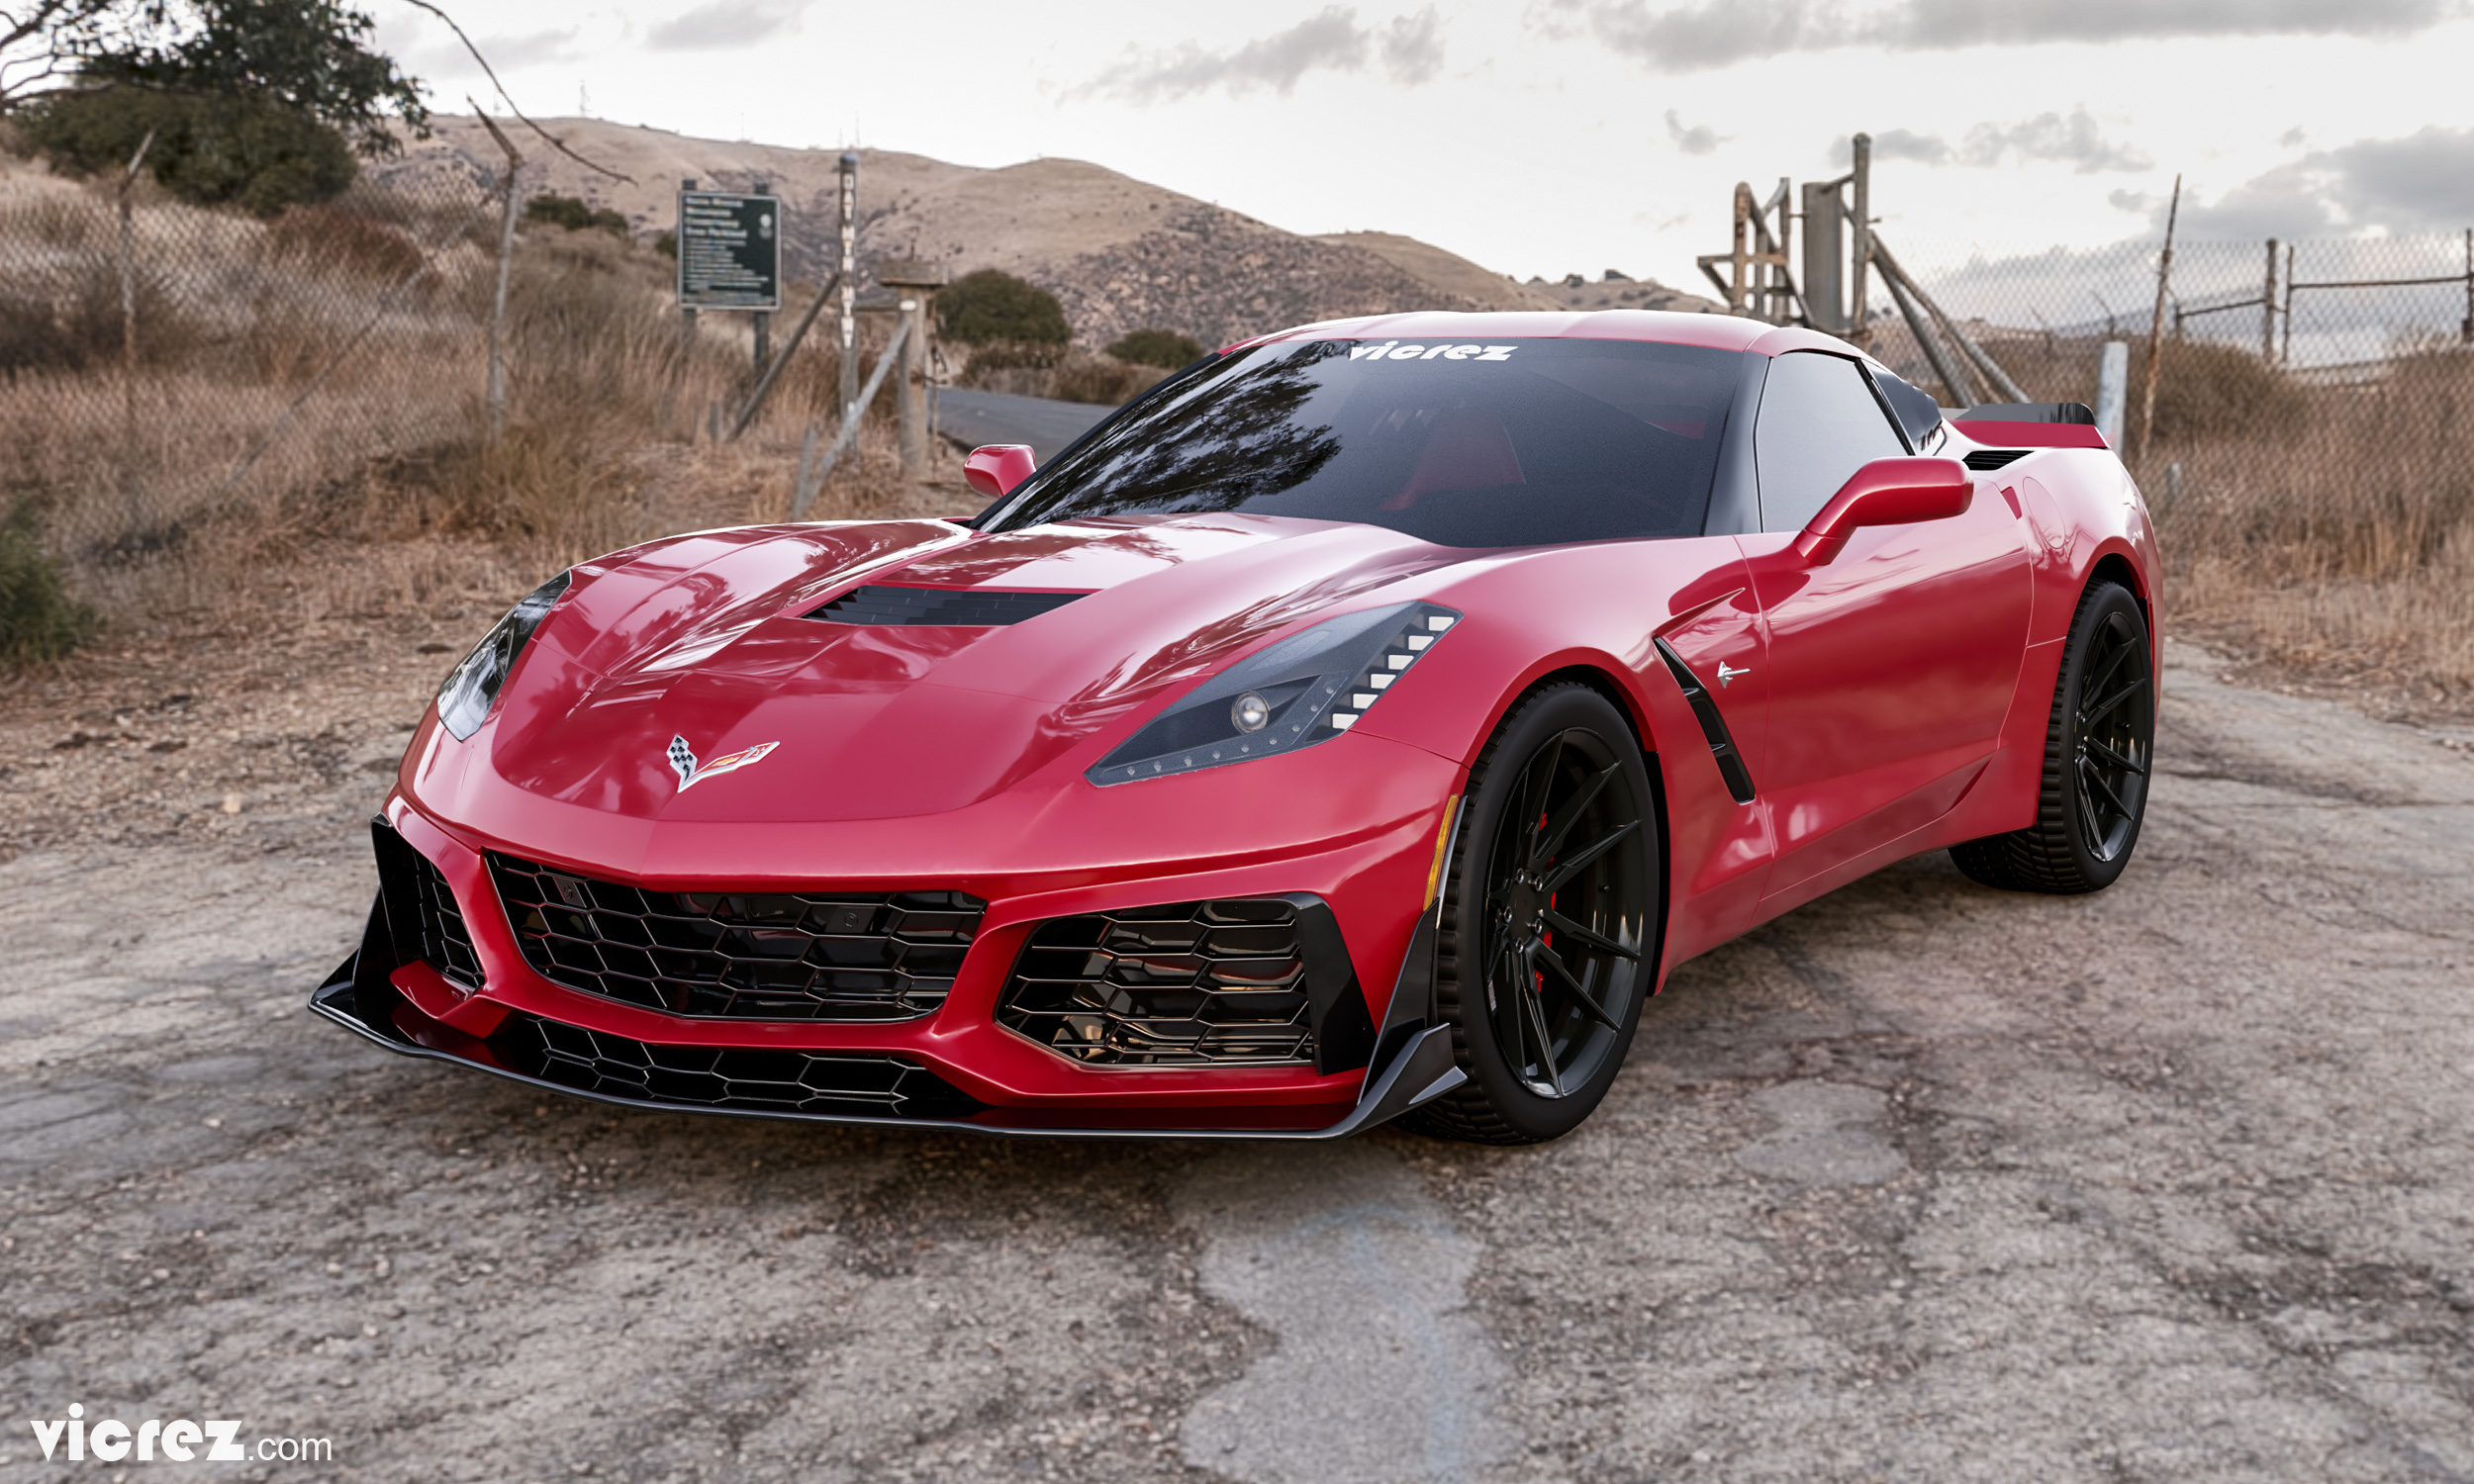 Red Corvette C7 Stingray x Vicrez VZR1 Front Bumper vz101478